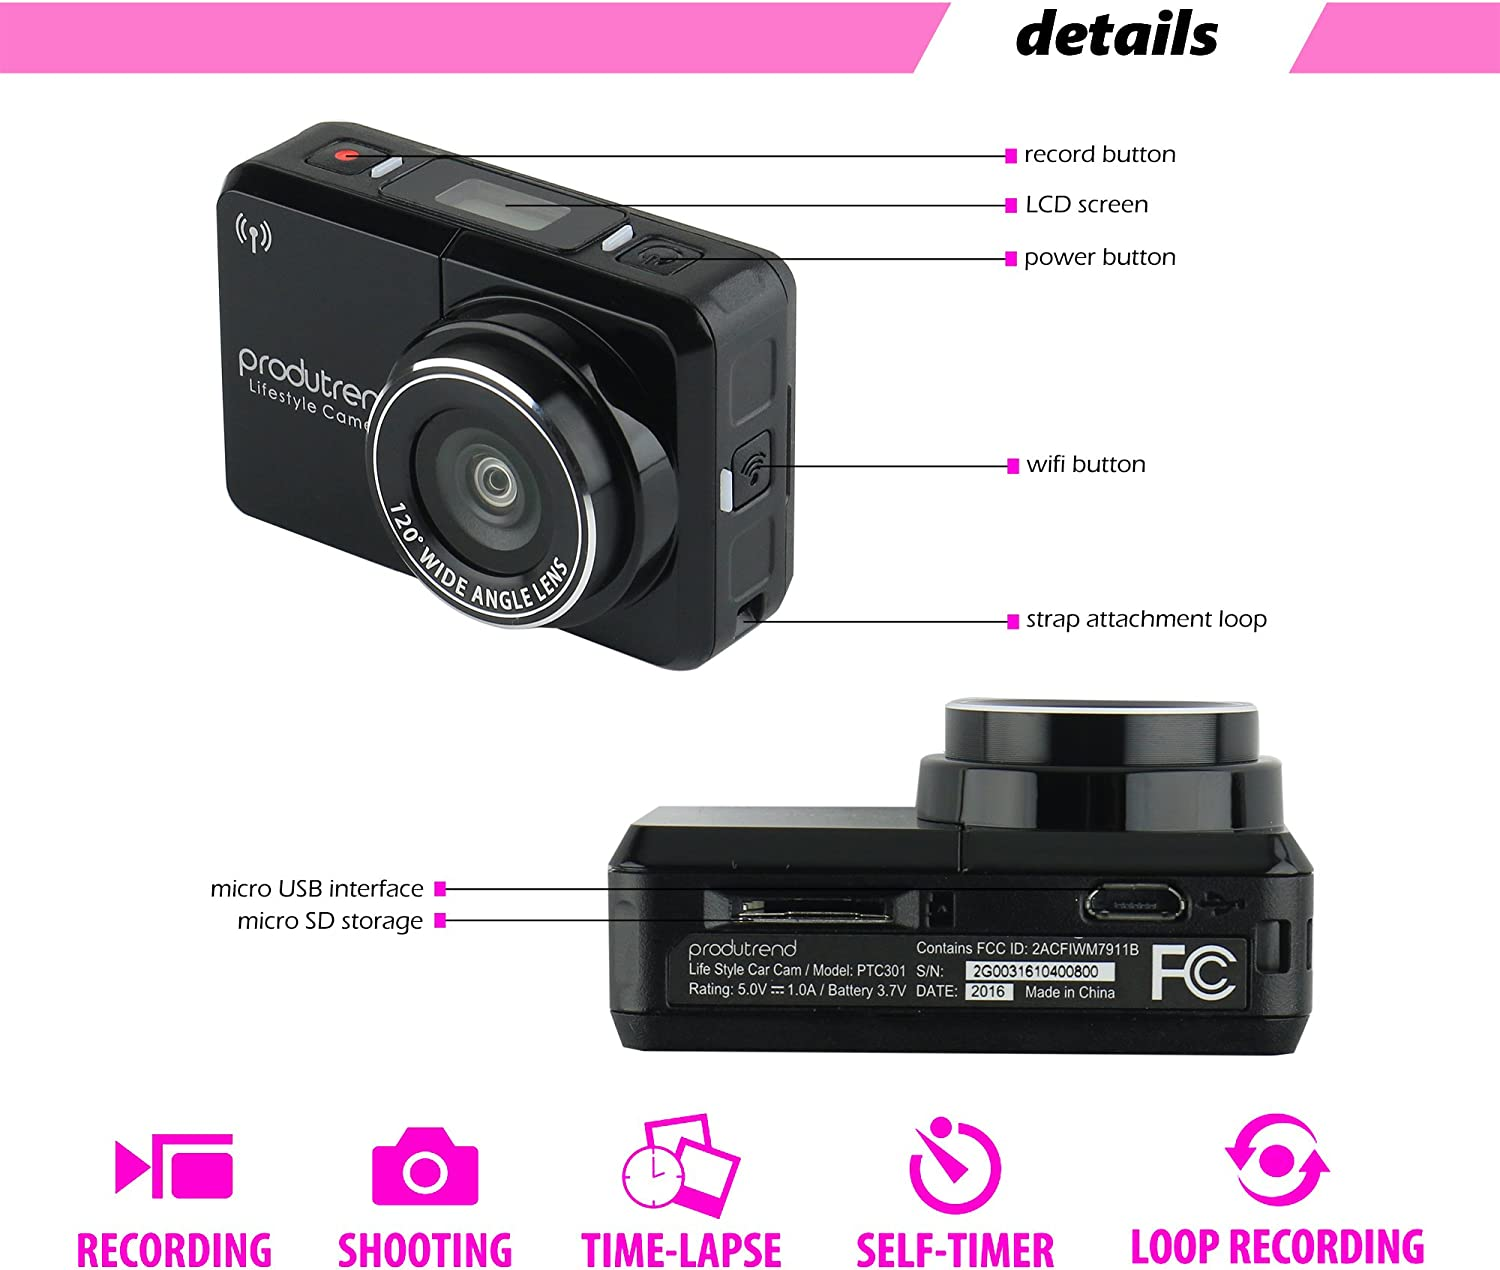 30 FPS Video Recorder Full HD 1080p Dash Cam 120/° Wide Angle Lens by ProduTrend PTC301 Nightvision 8 Megapixel Sensor WiFi Sports Action and Car Dashboard Camera